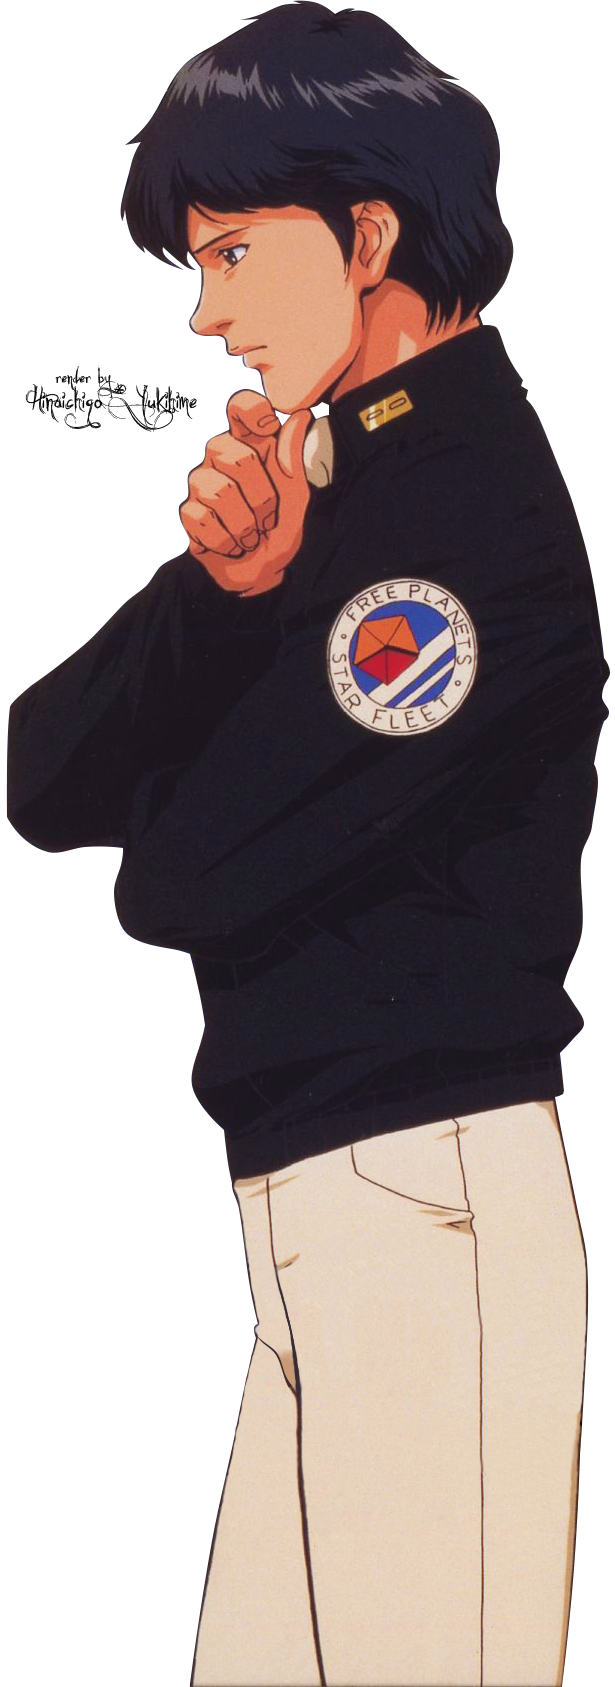 Render Yang Wenli - The legend of the Galactic heroes